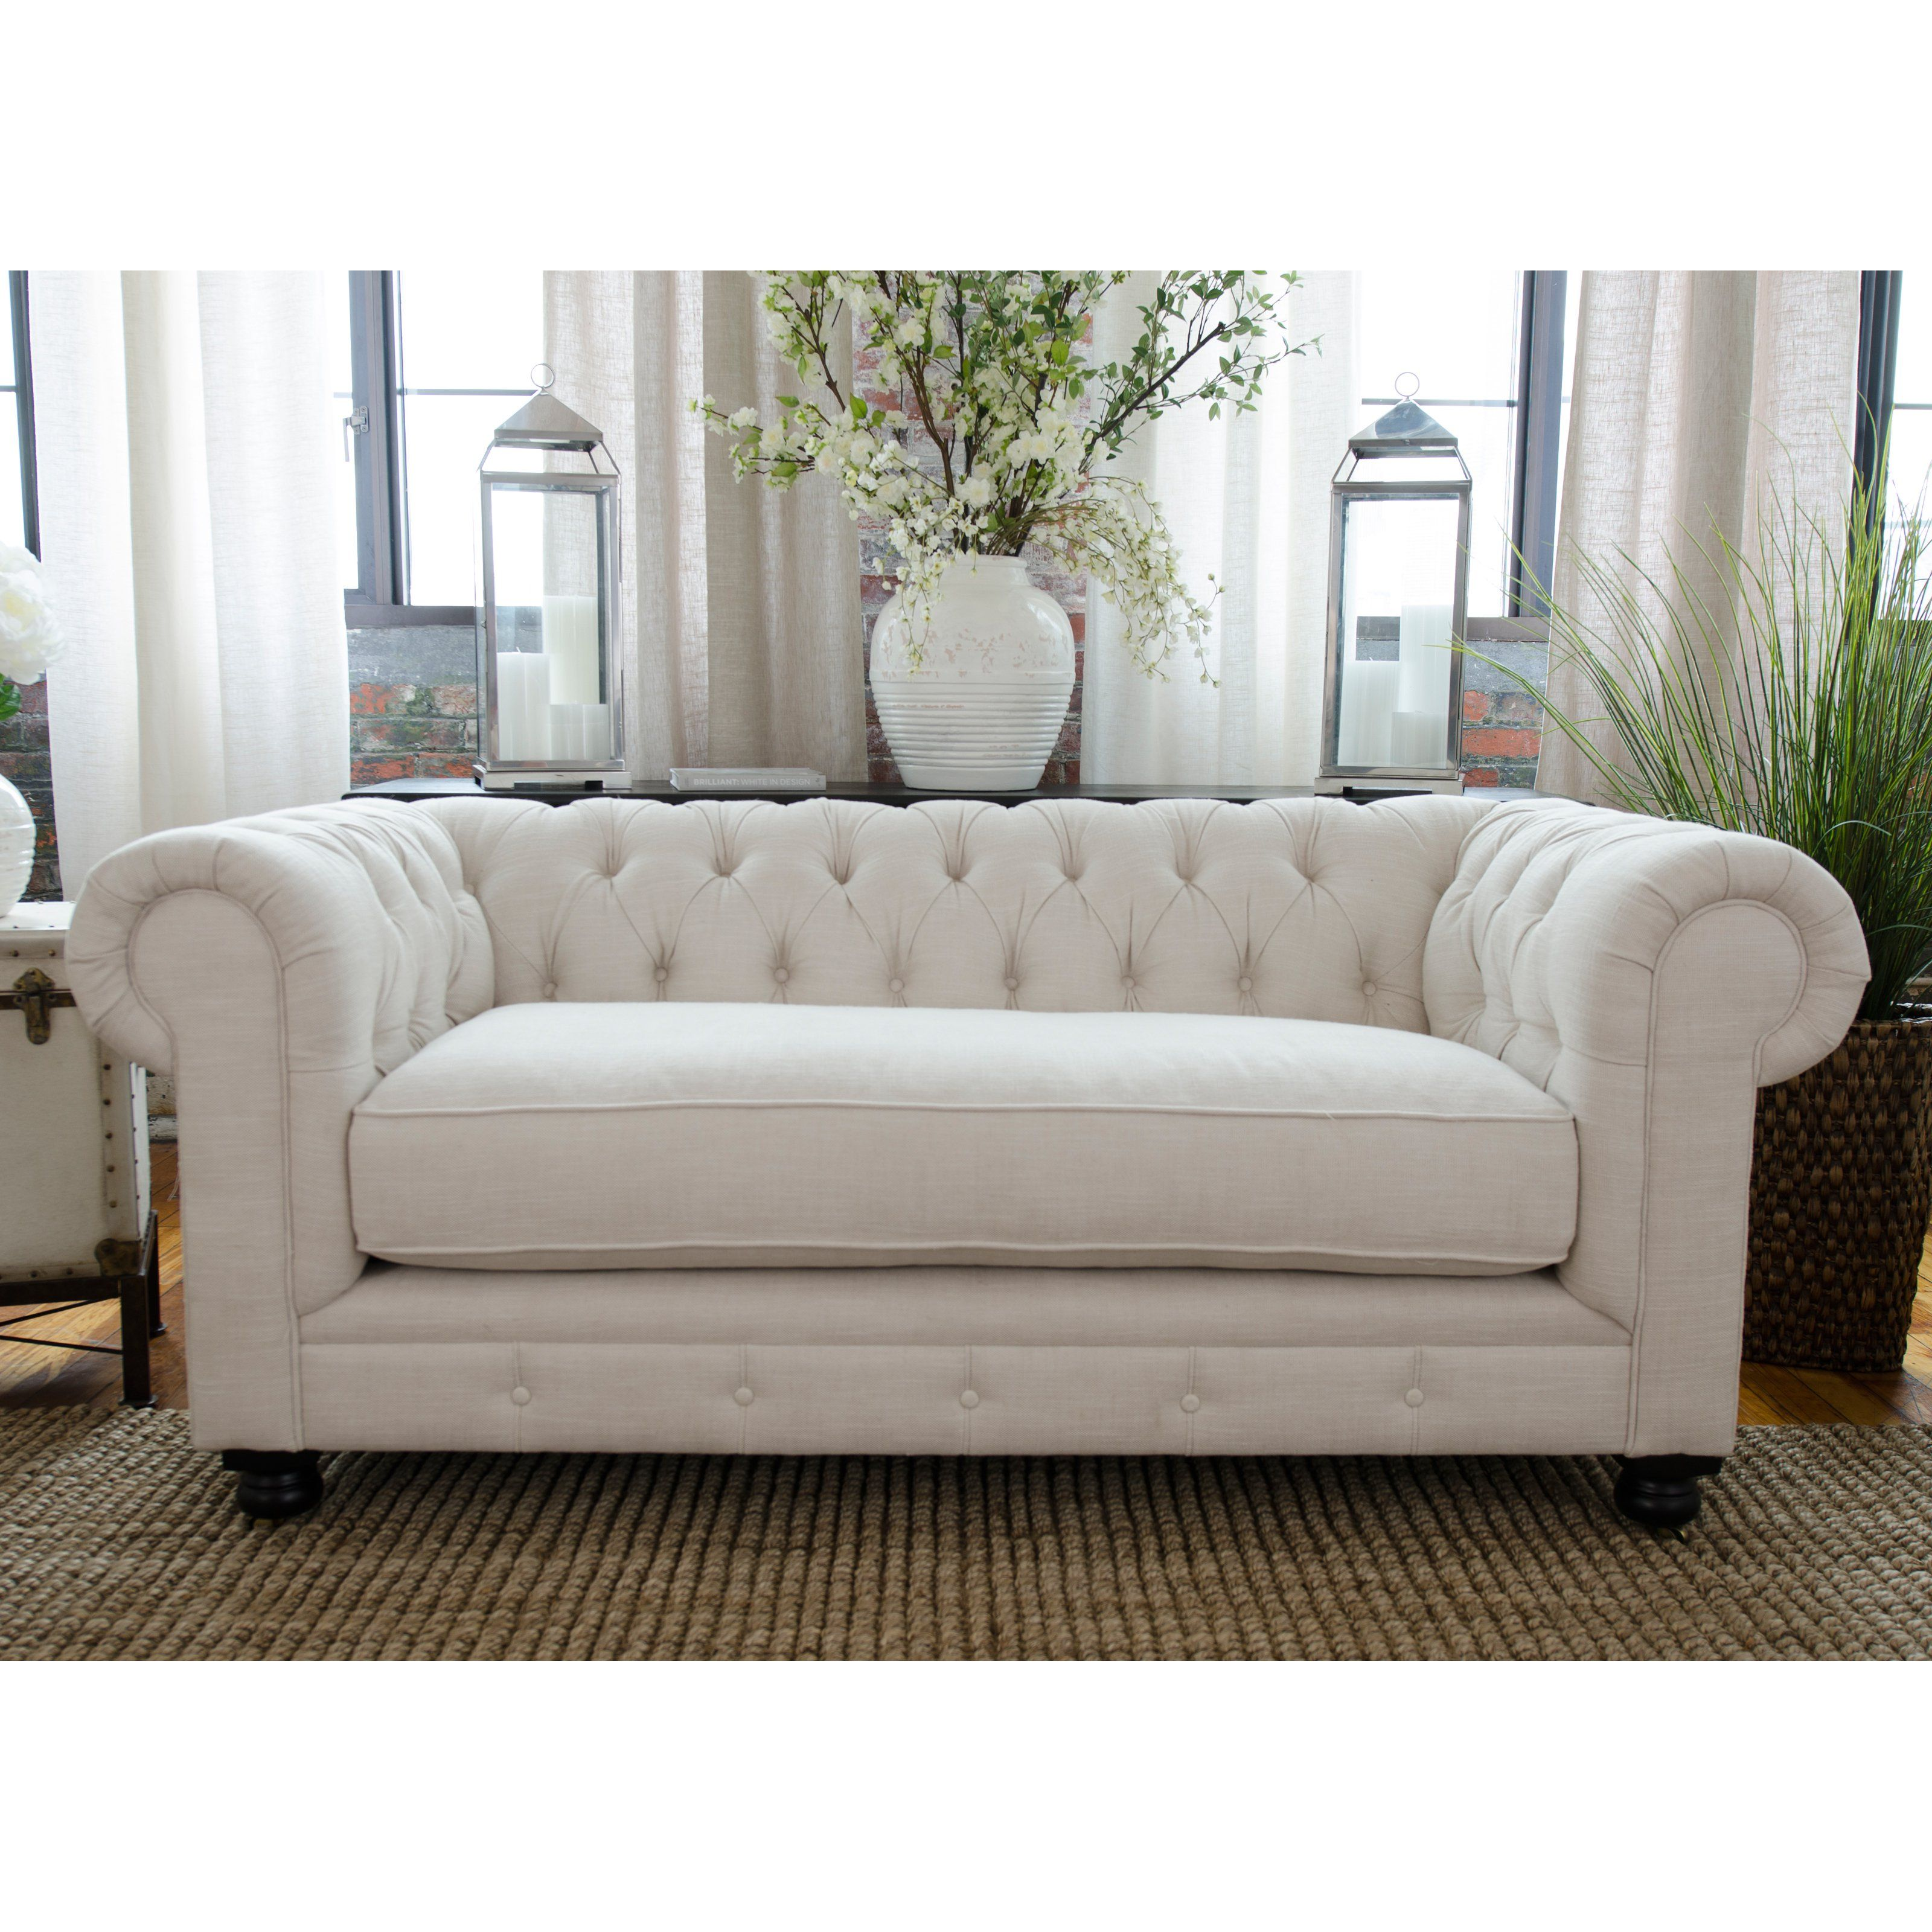 A Chesterfield Loveseat Is So Classic Arms At The Same Height As